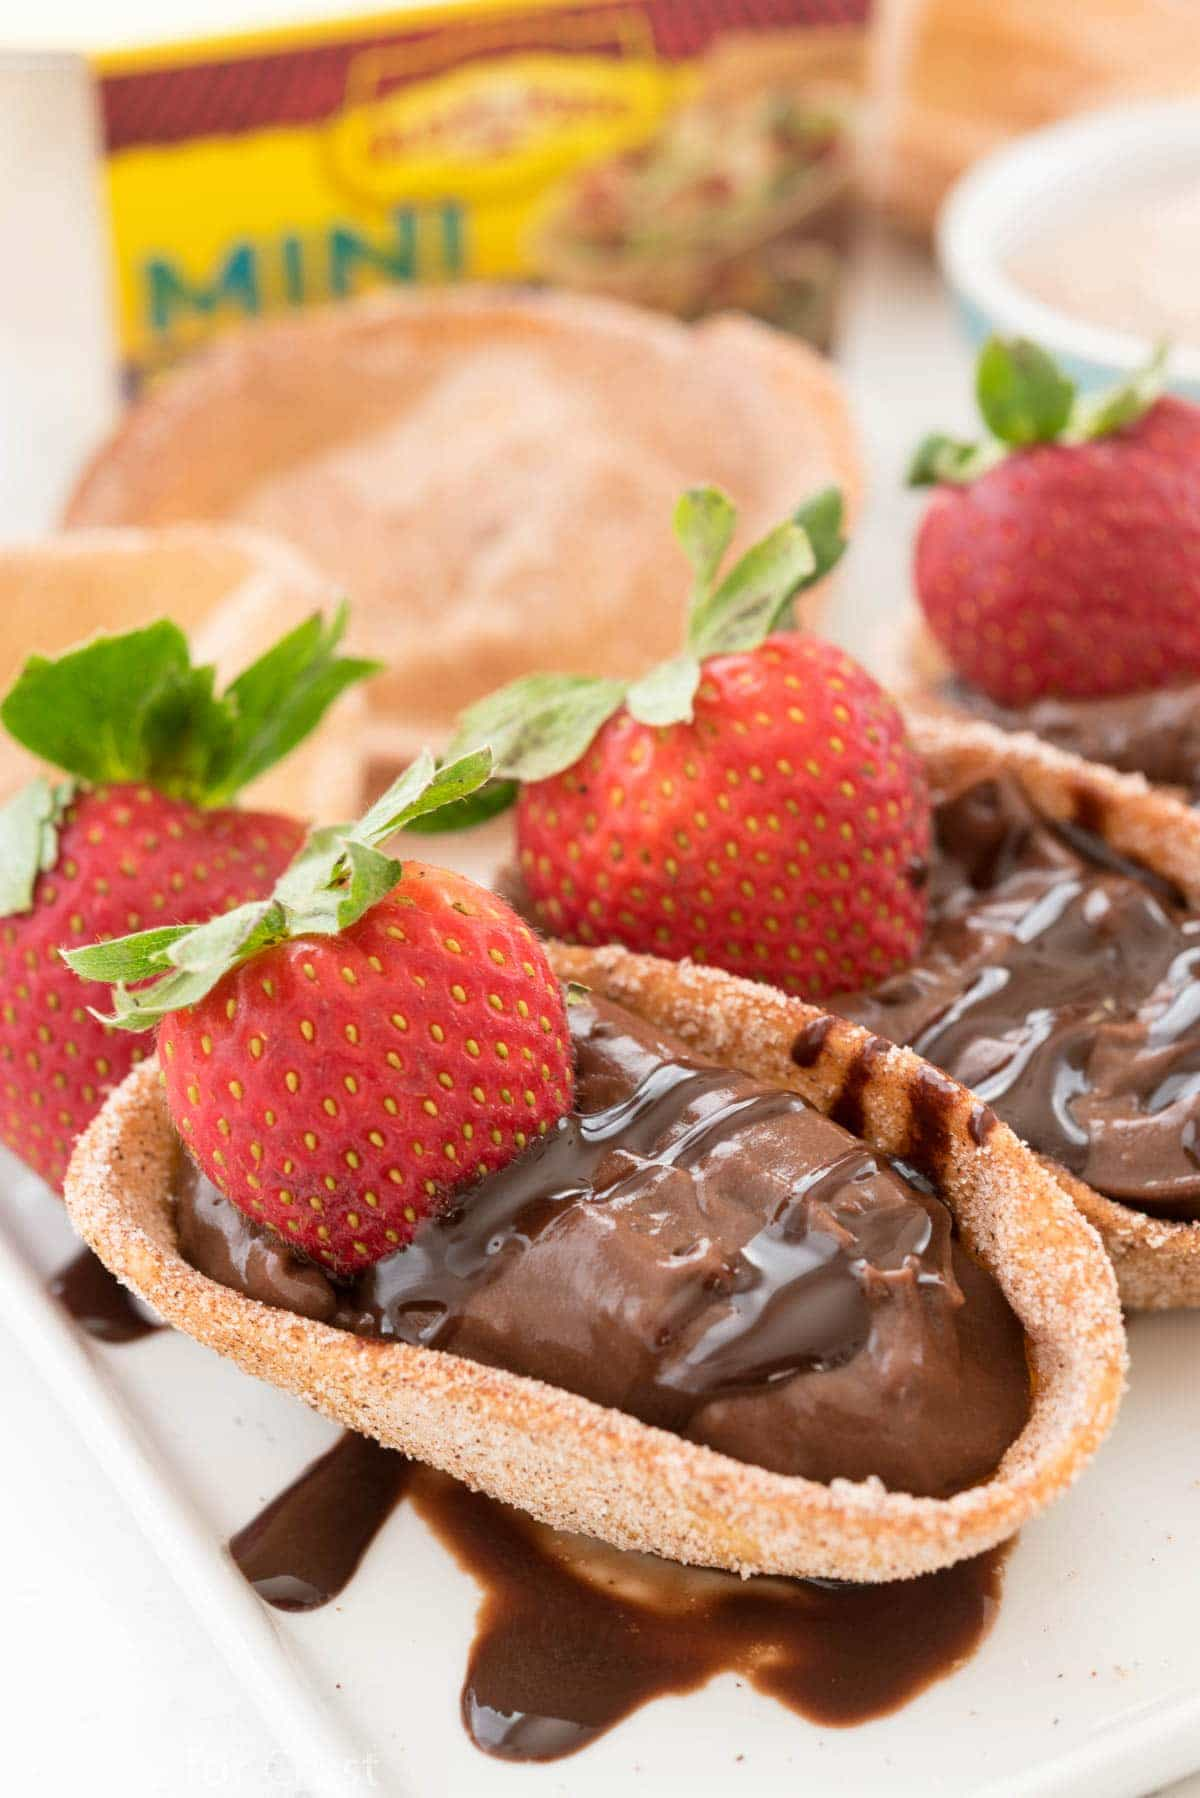 Chocolate Churro Pies Dessert